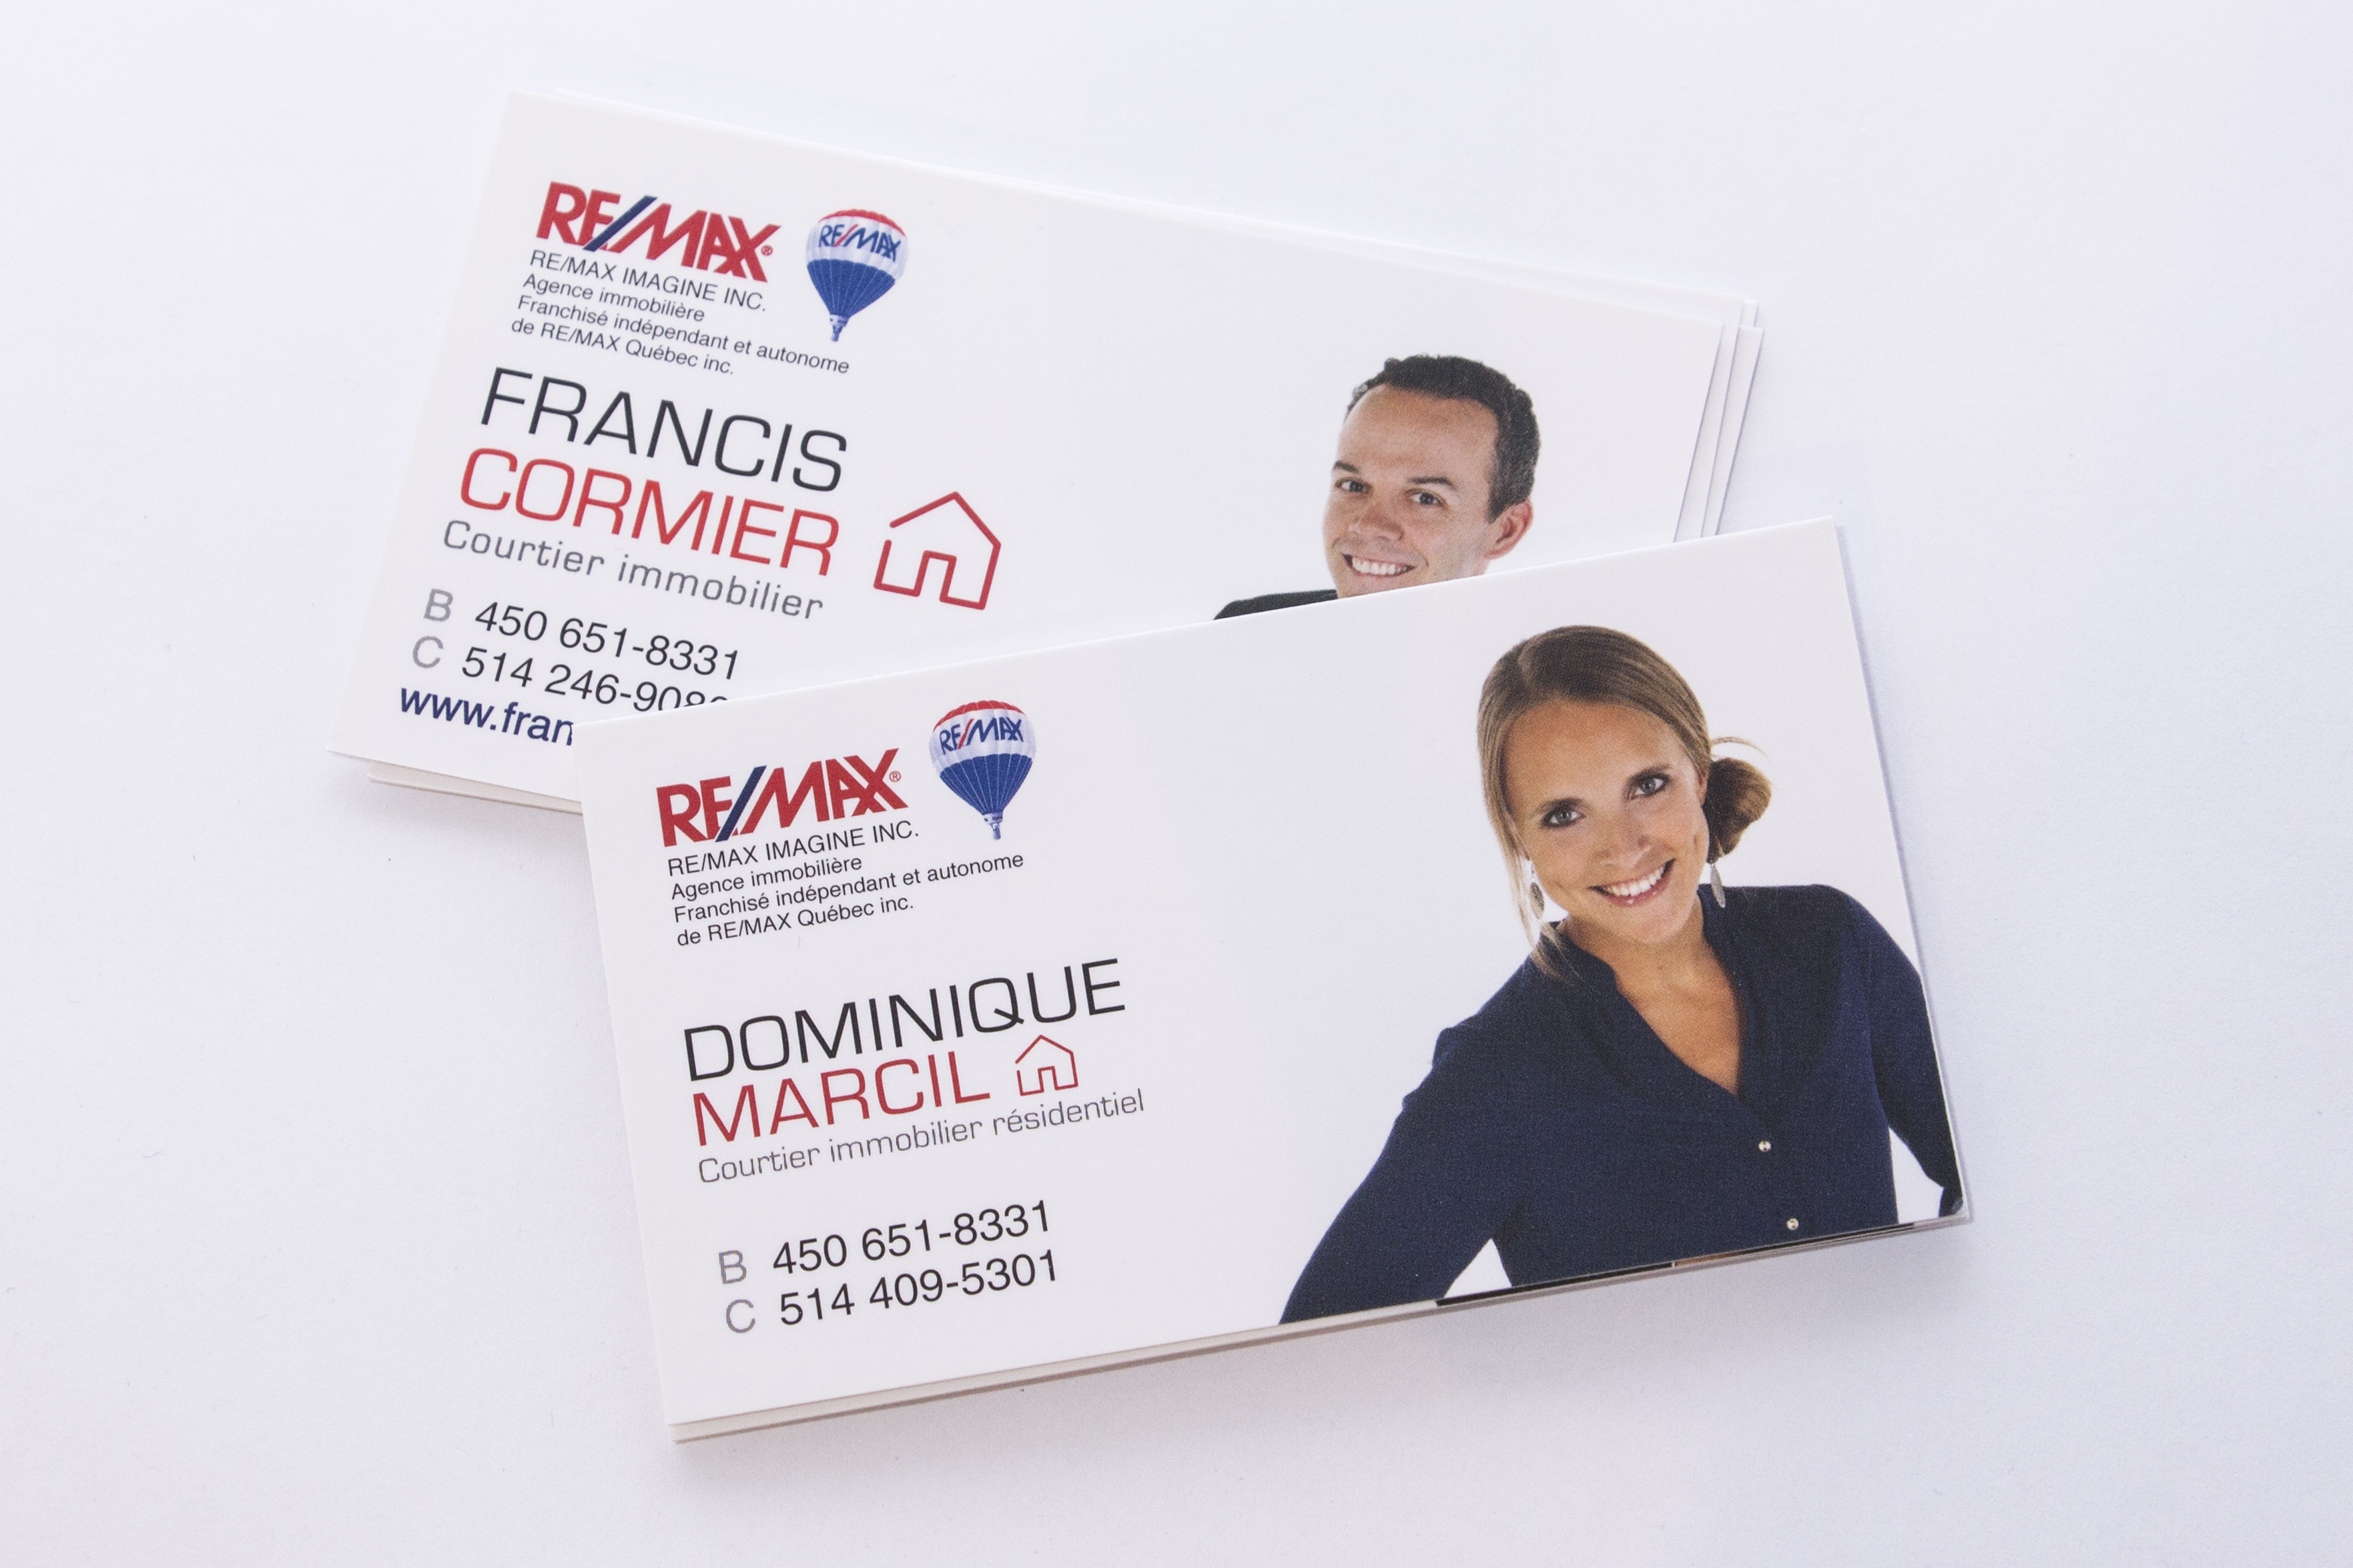 Cartes d'affaires Dominique Marcil et Francis Cormier Remax